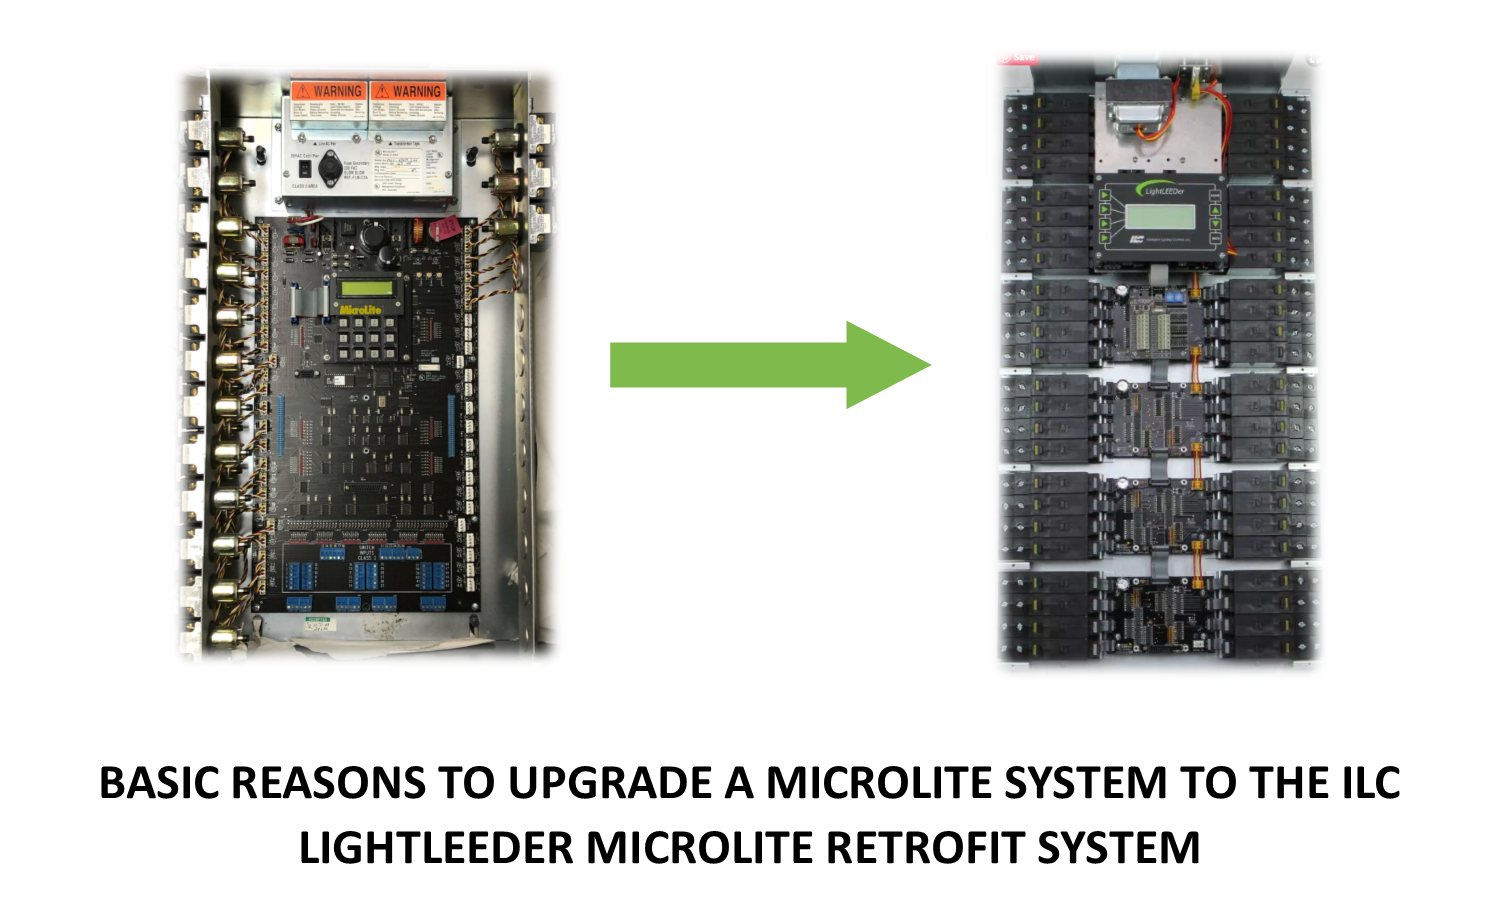 Basic reasons to upgrade a Microlite System to the ILC LightLEEDer Microlite Retrofit System